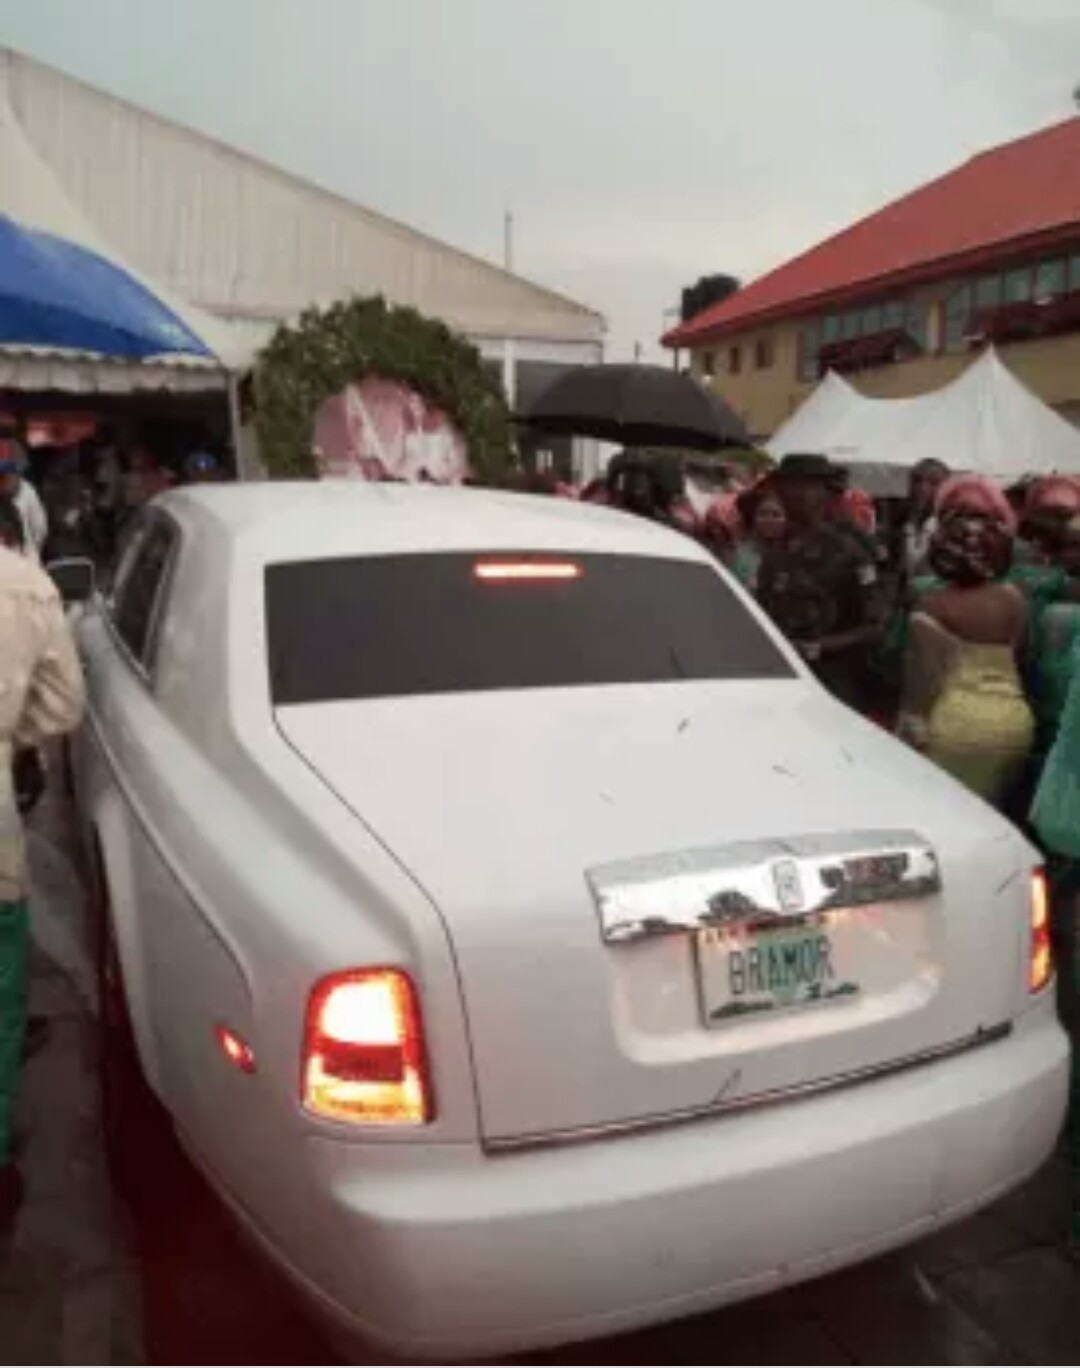 brand new toyota camry nigeria grand avanza vs xclusive world news nigerian couple give out cars as a gave two souvenirs at their colourful wedding in benin edo state